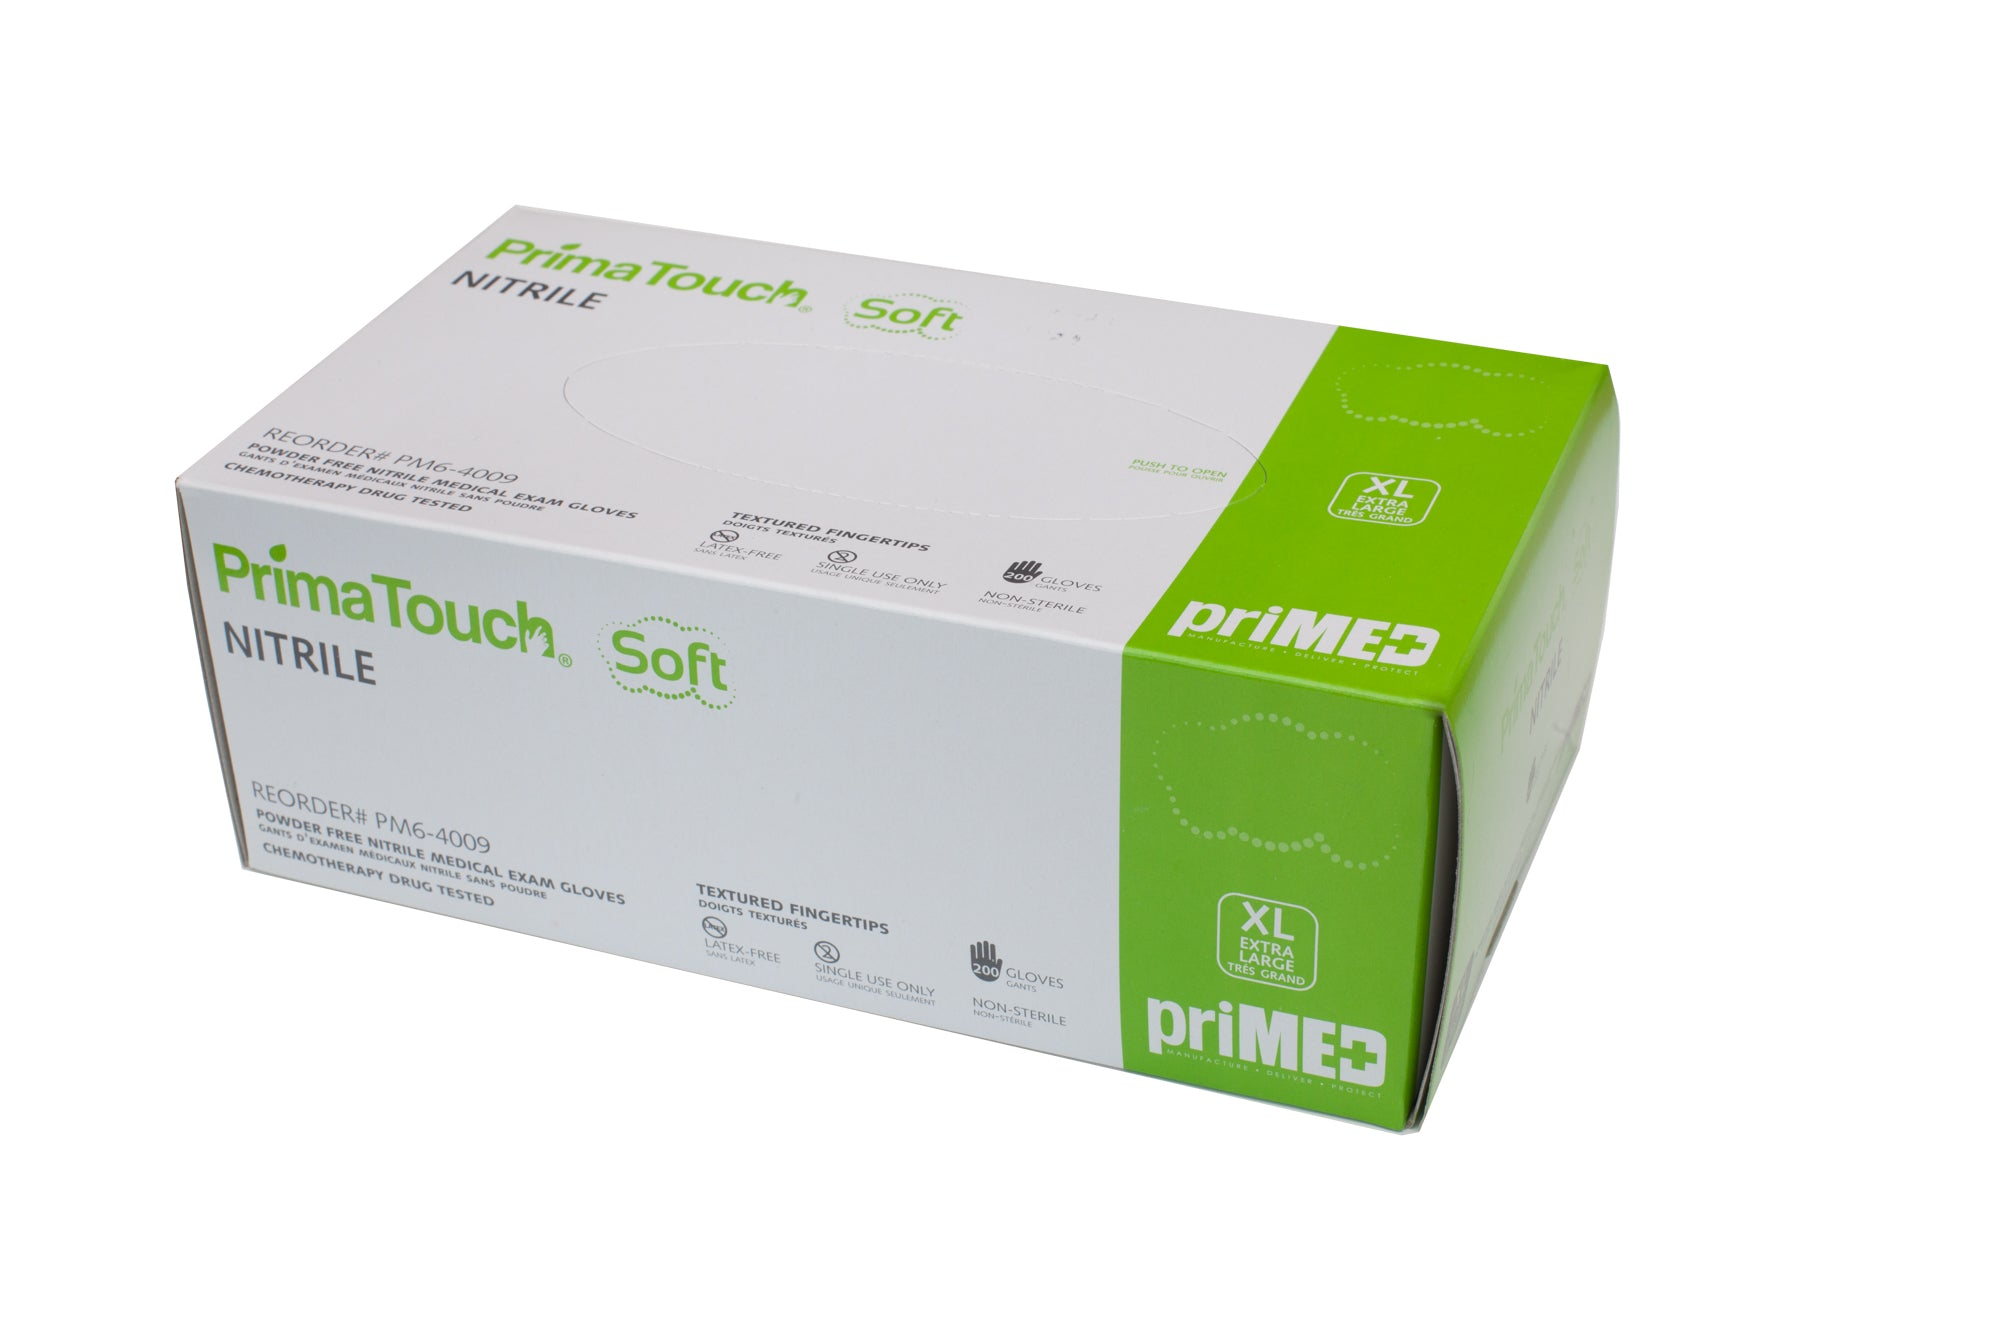 Prima Touch Soft PF Nitrile Exam Gloves 200pcs/box